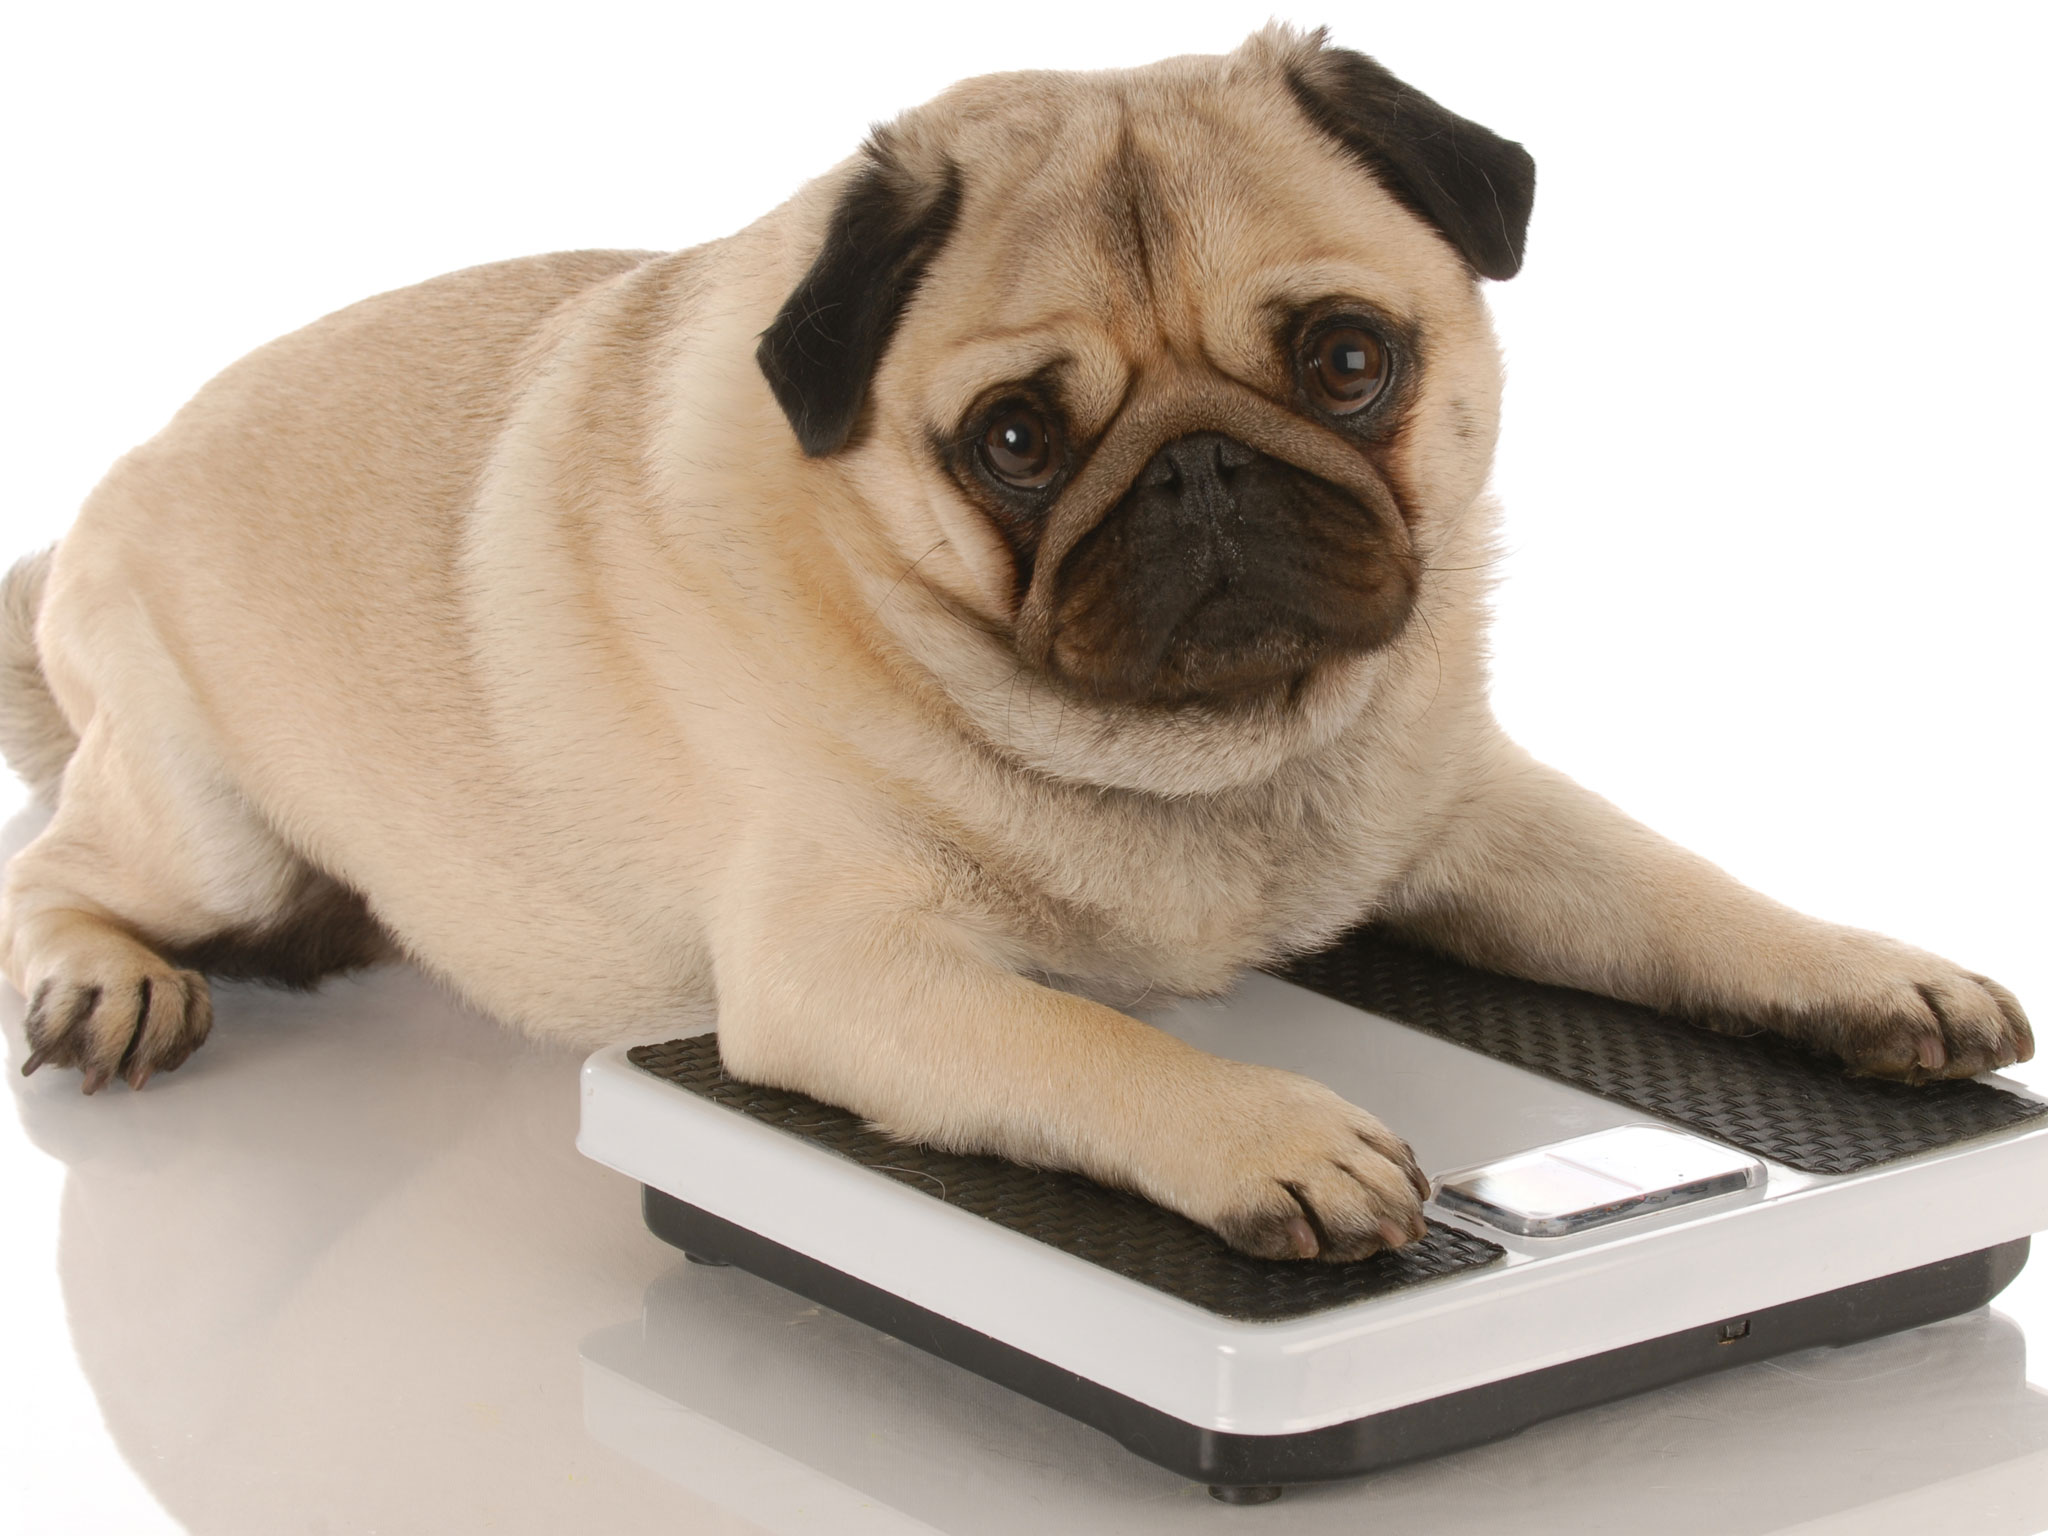 Chubby Dog  - Making Changes To Improve Your Dog's Health